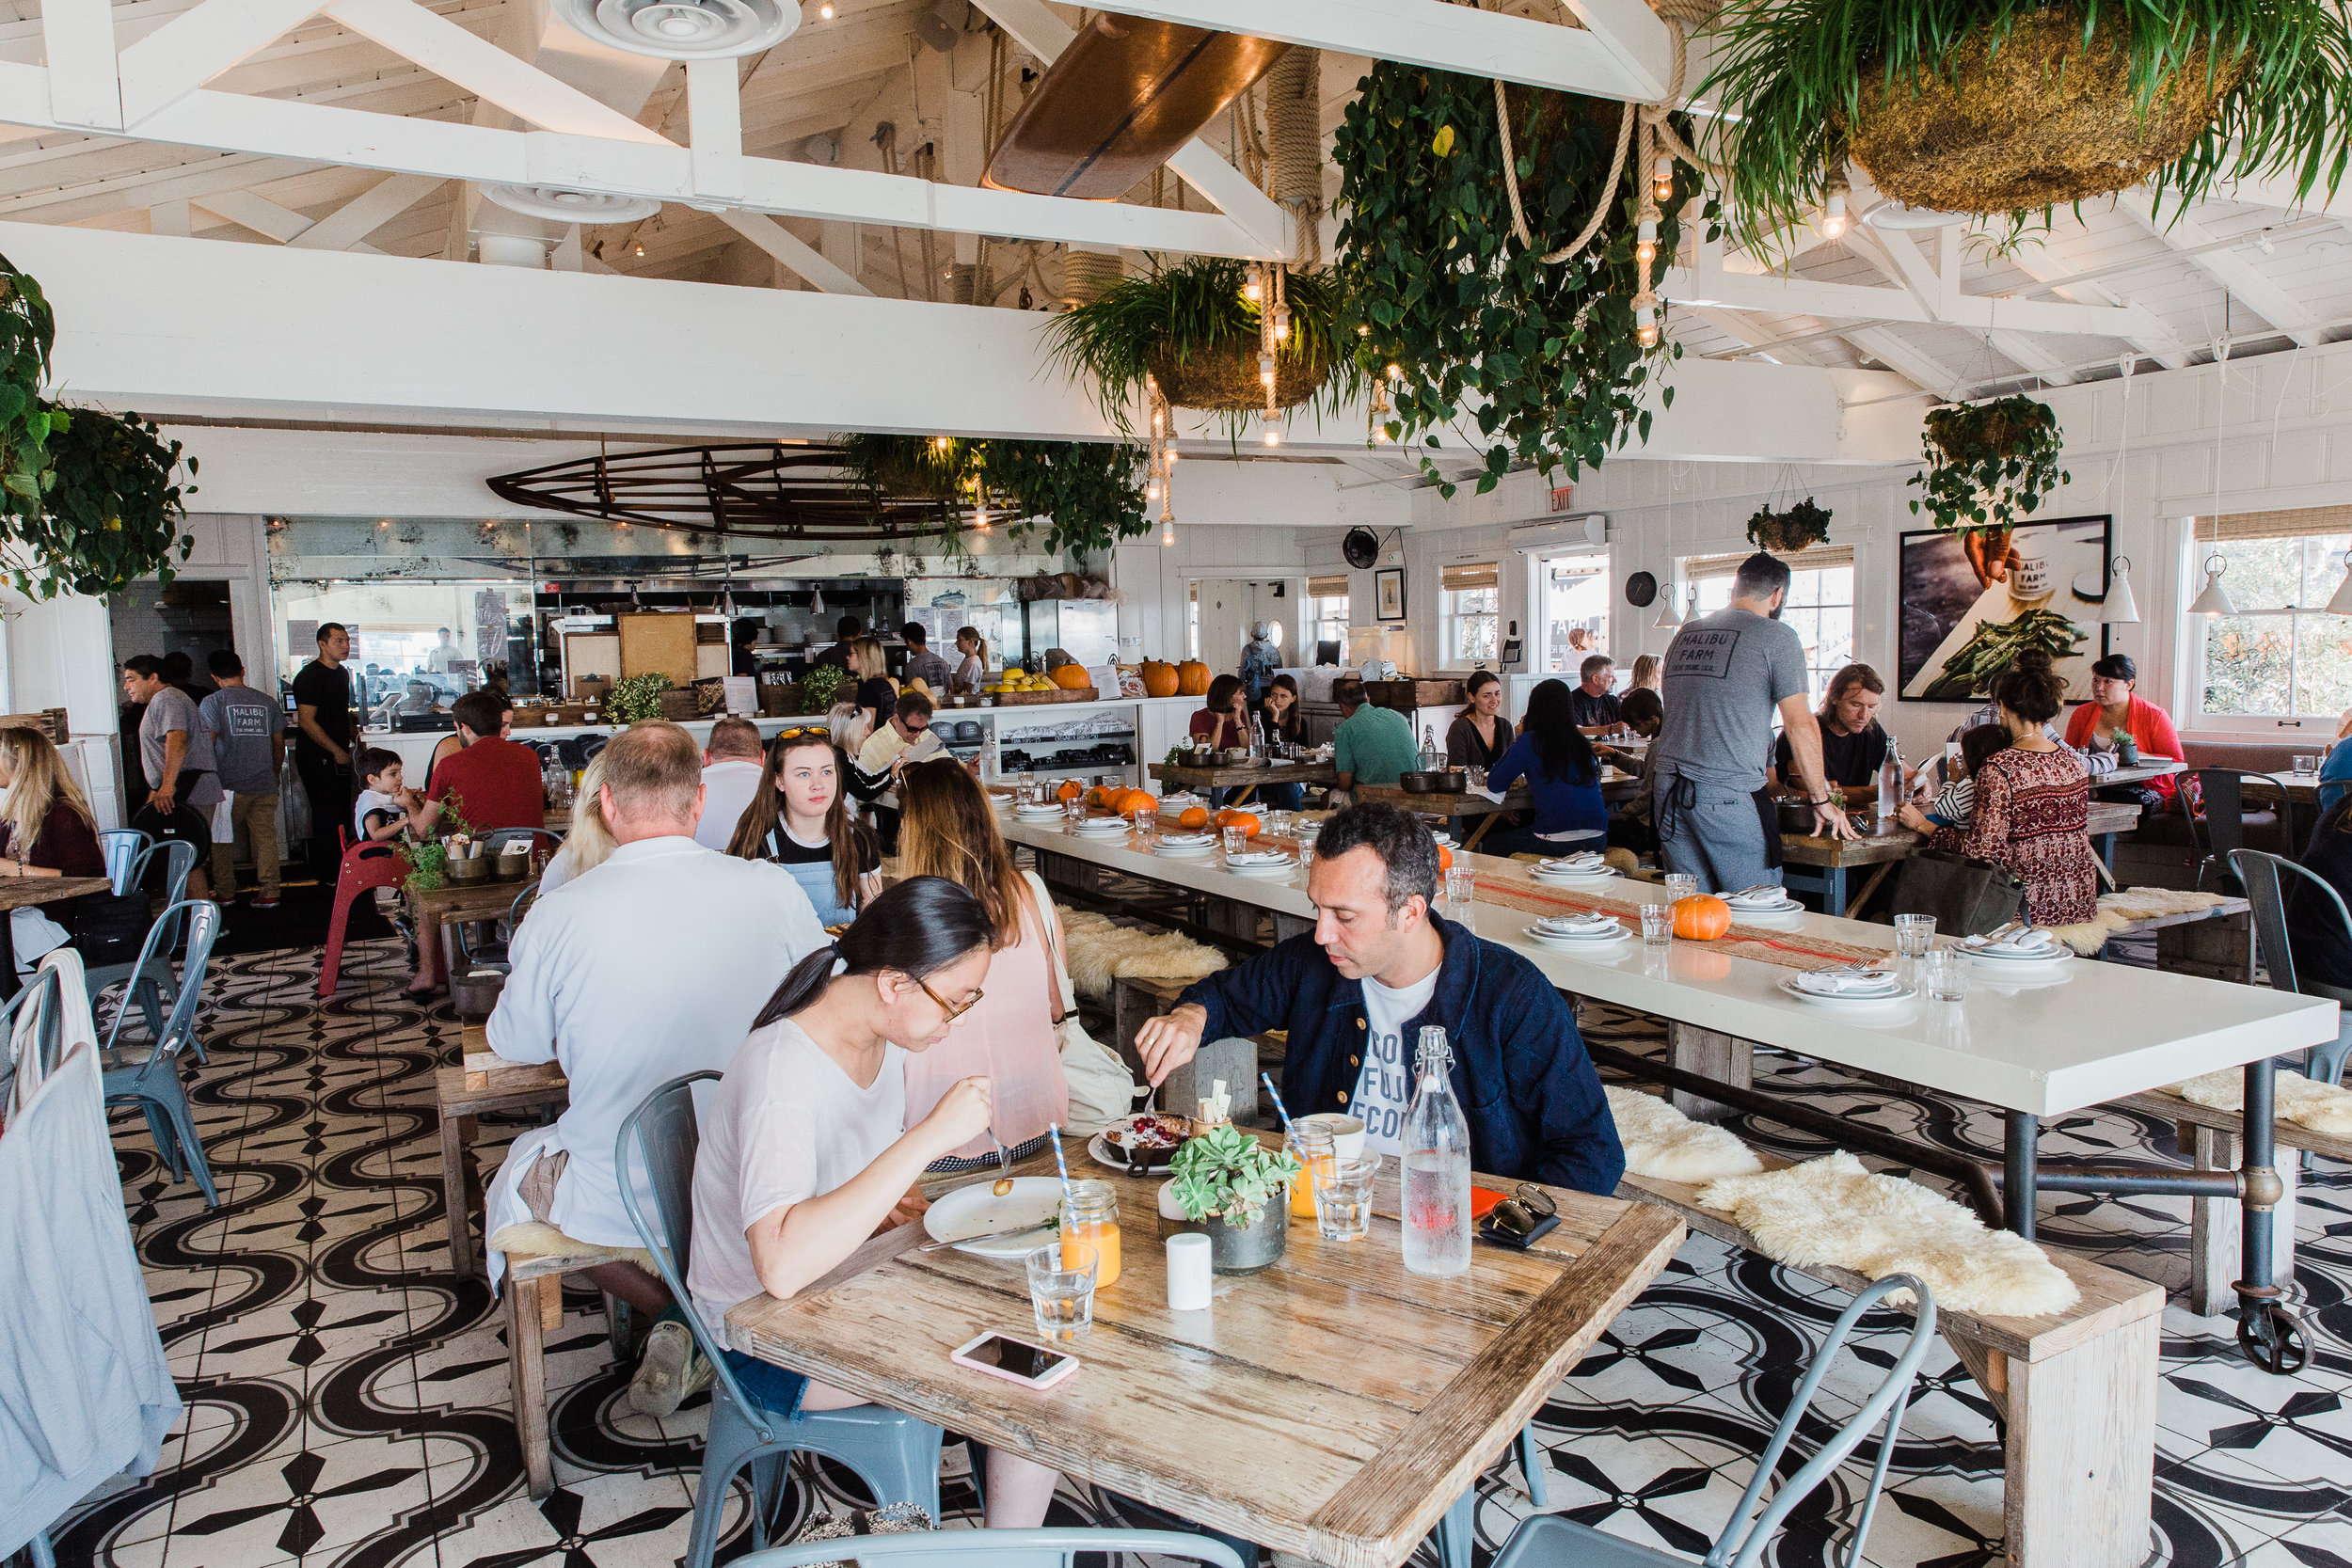 Diners can choose between Malibu Farm's restaurant, or it's more casual sister cafe next door.